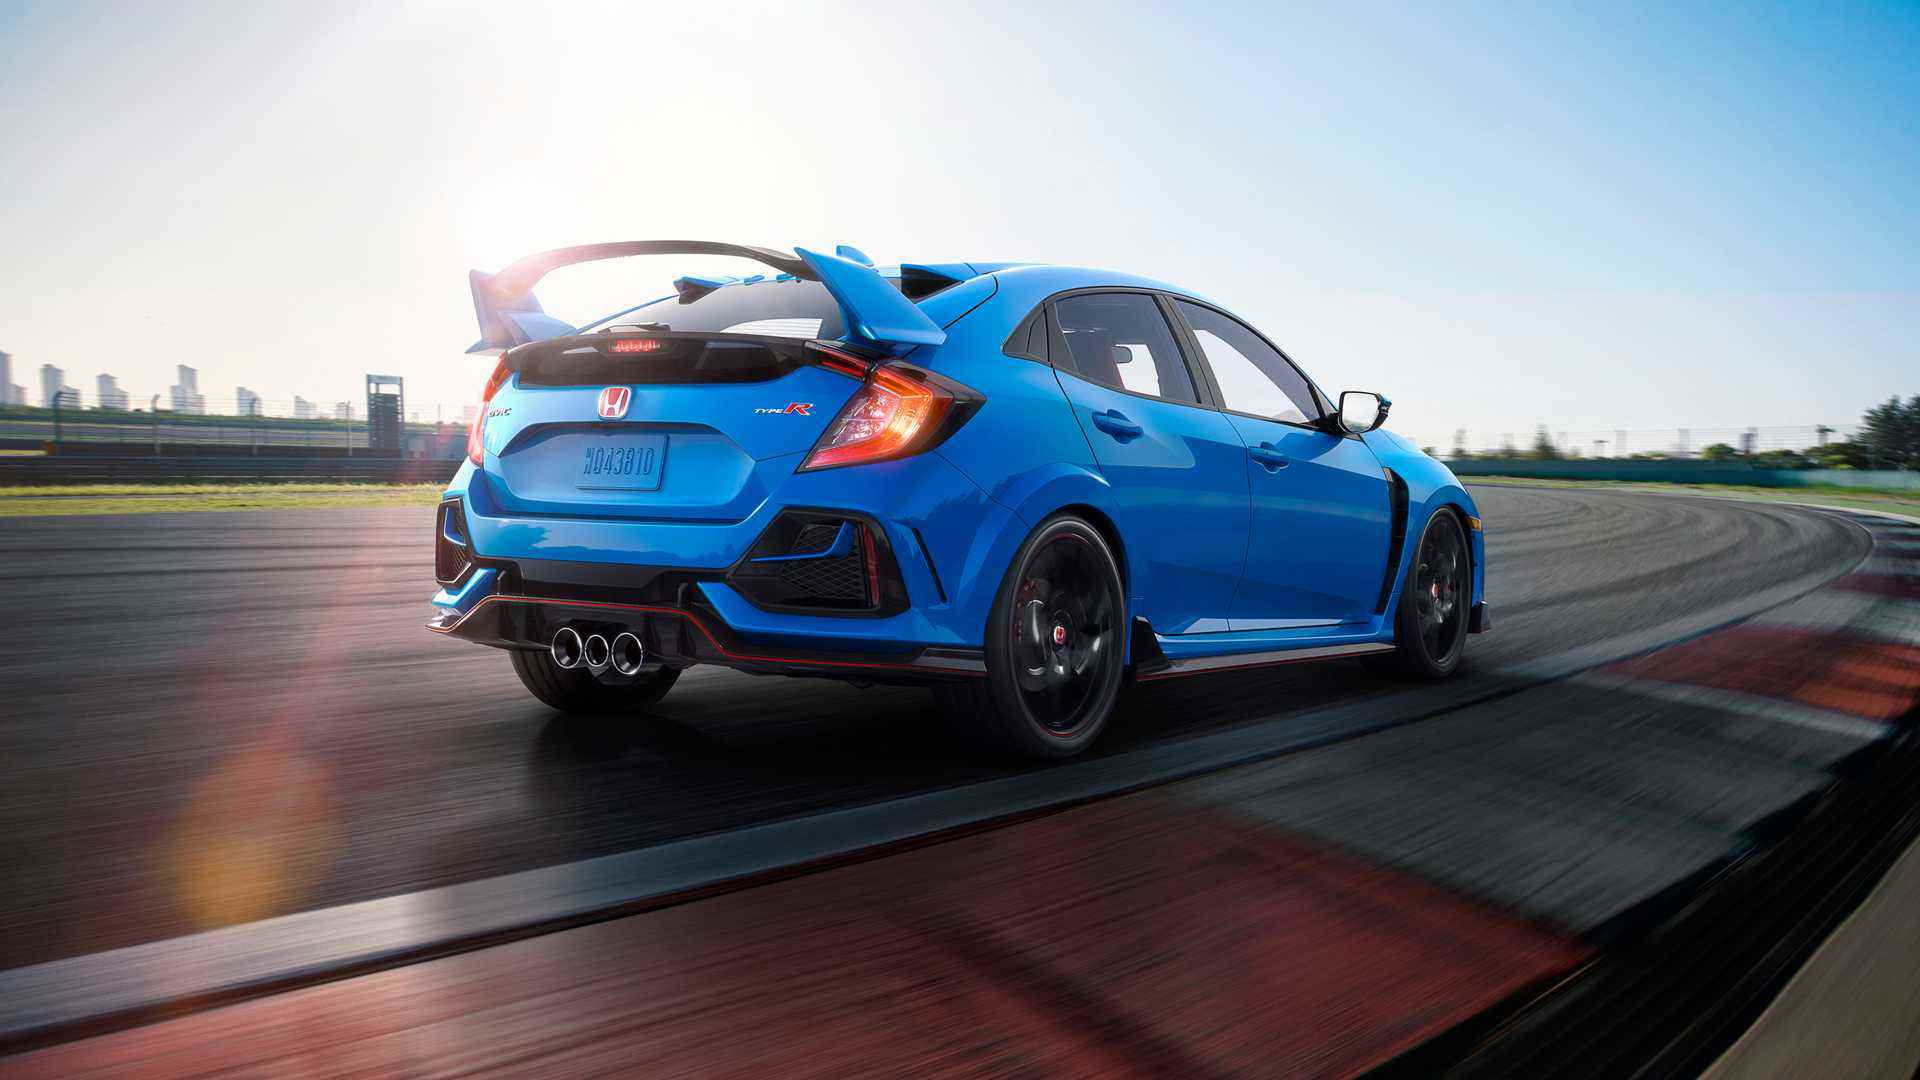 2020-honda-civic-type-r-3